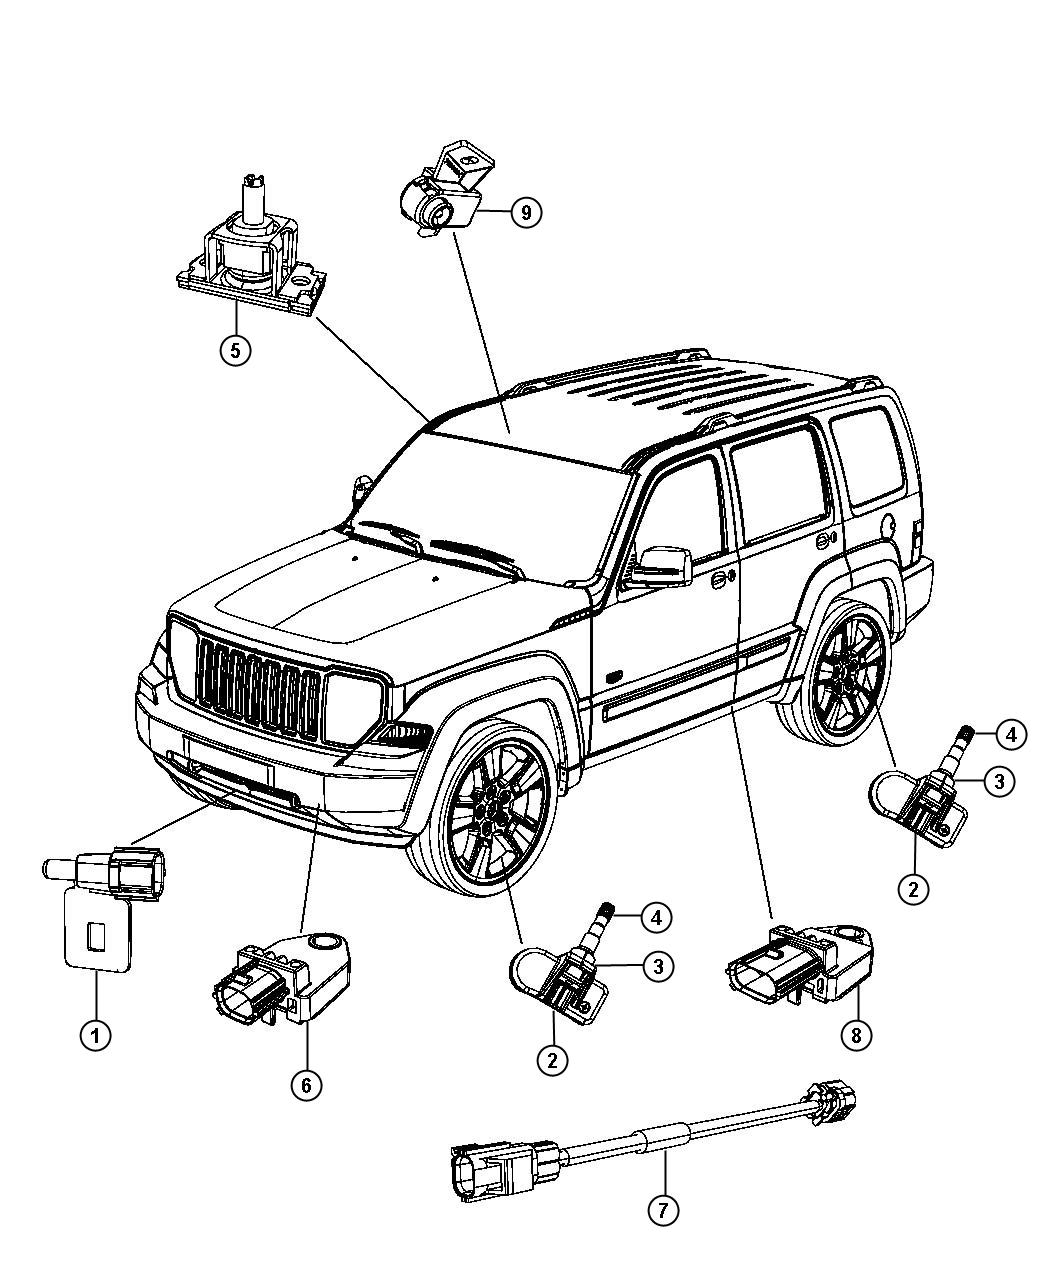 2012 Jeep Liberty Wiring. Jumper. Impact sensor. Front